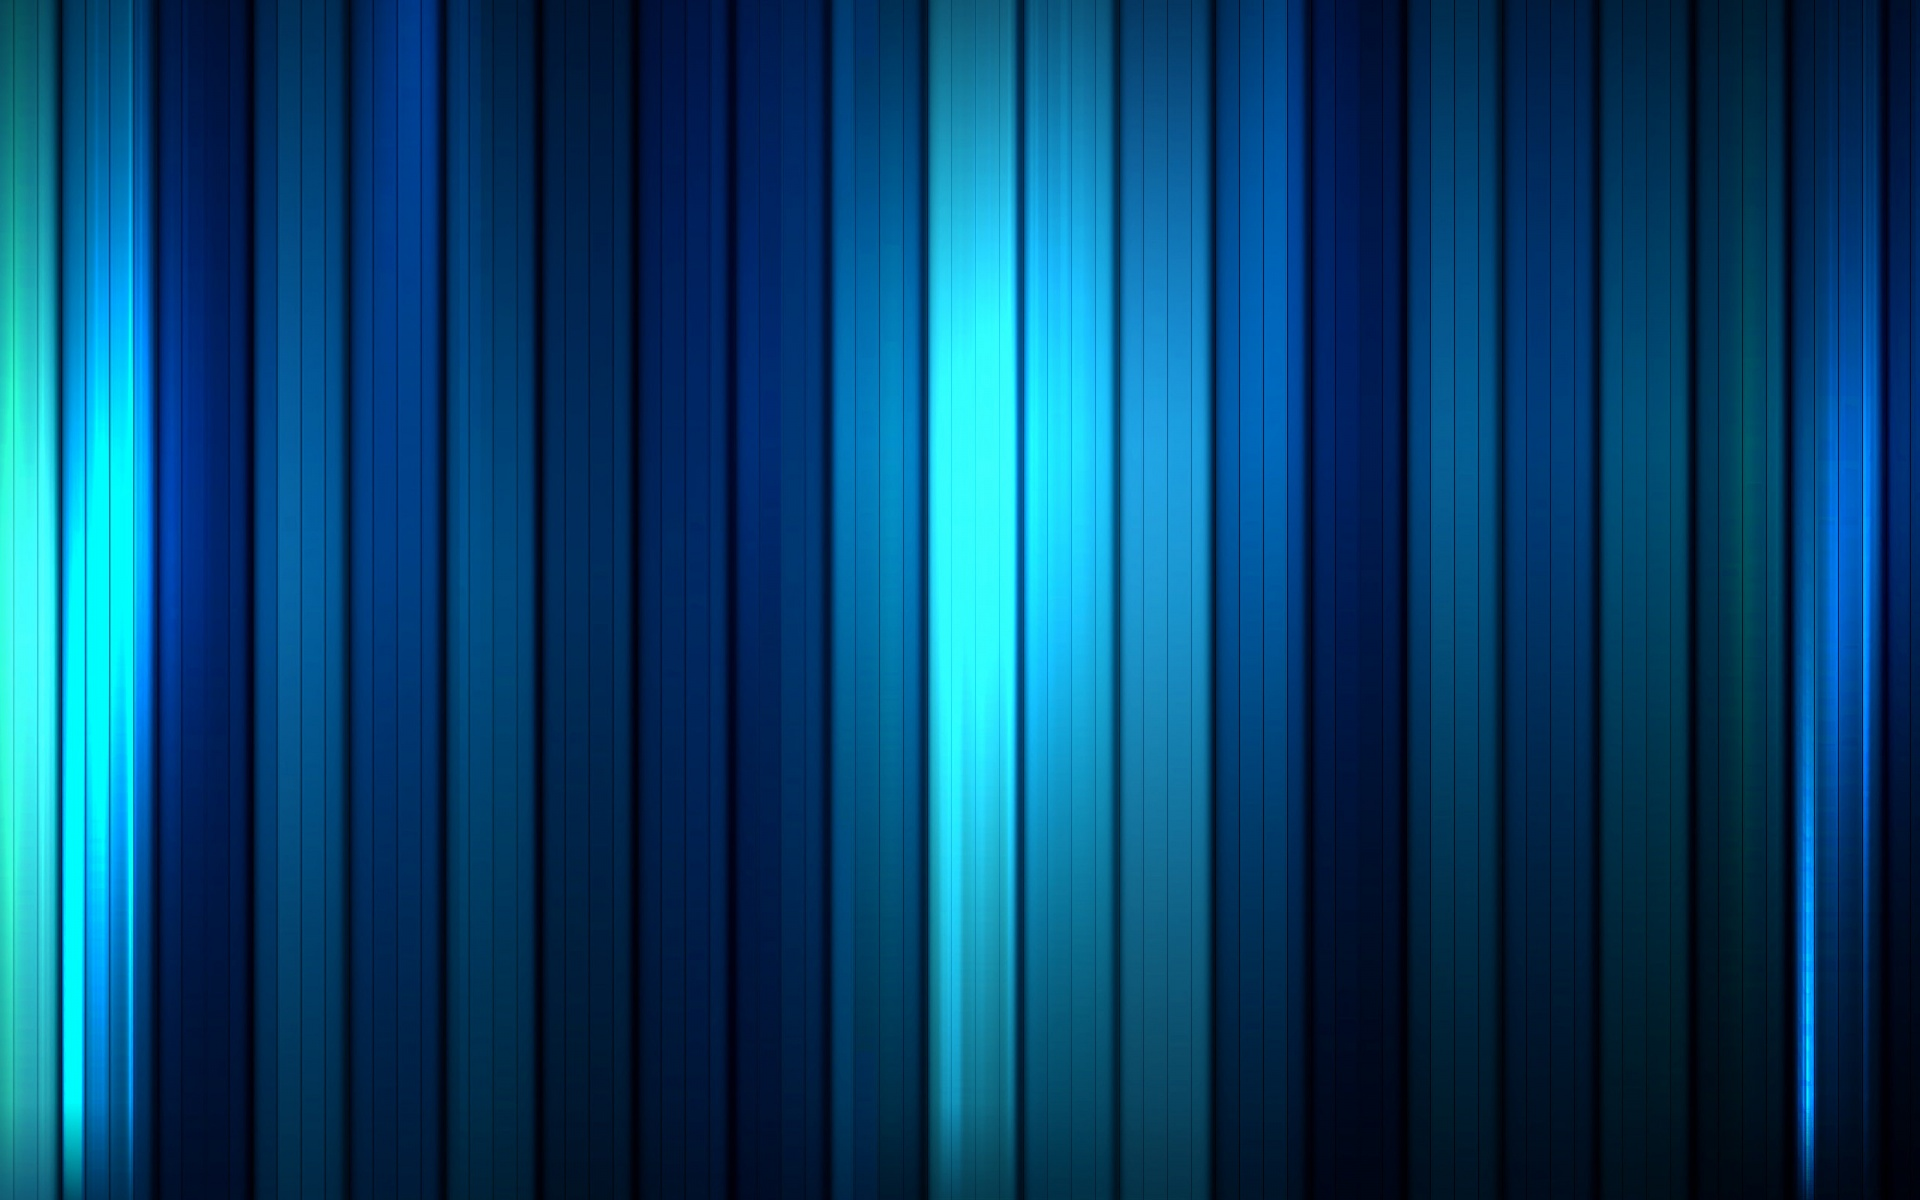 Blue Background Wallpaper 44 Wallpapers Adorable Wallpapers